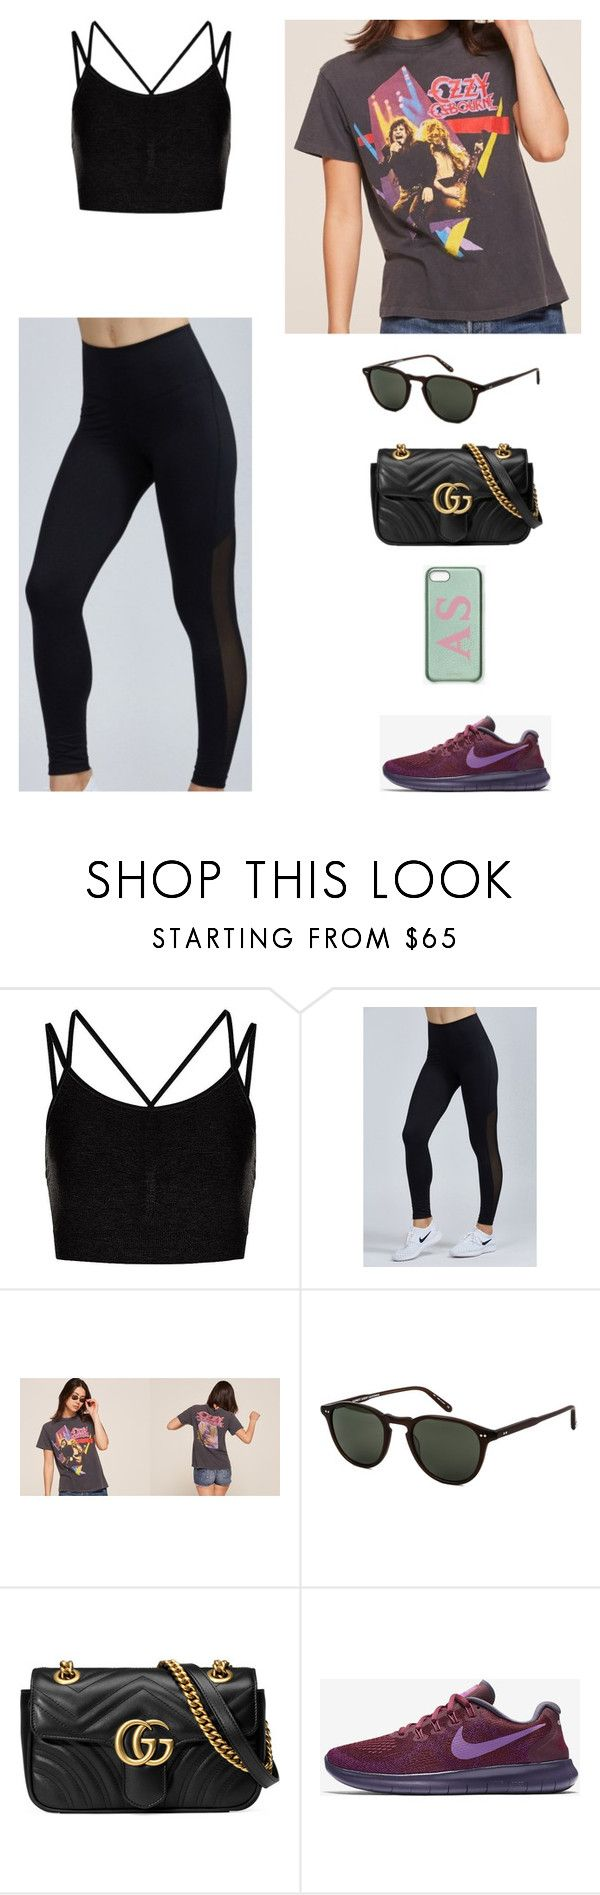 """""""10/10 - Workout"""" by mrs-schultzz ❤ liked on Polyvore featuring Sweaty Betty, Varley, Garrett Leight, Gucci and NIKE"""